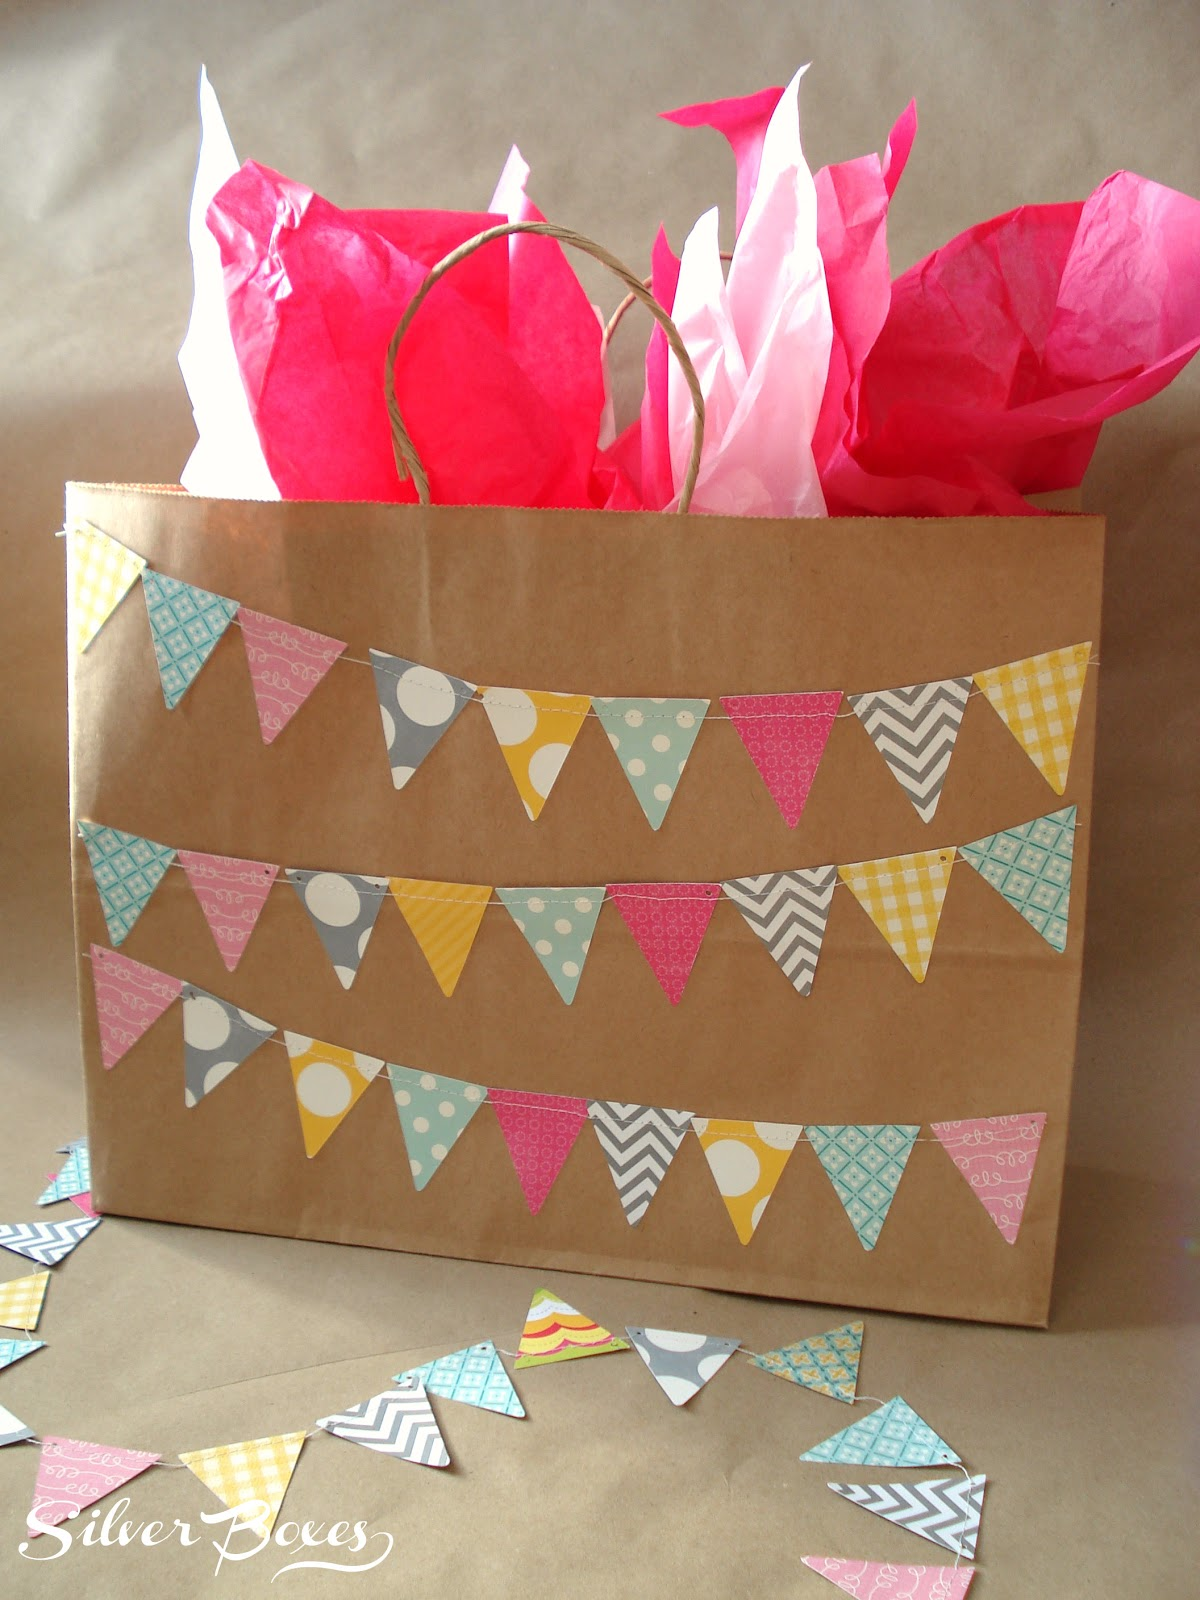 Silver boxes diy pennant gift bag for Bag decoration ideas